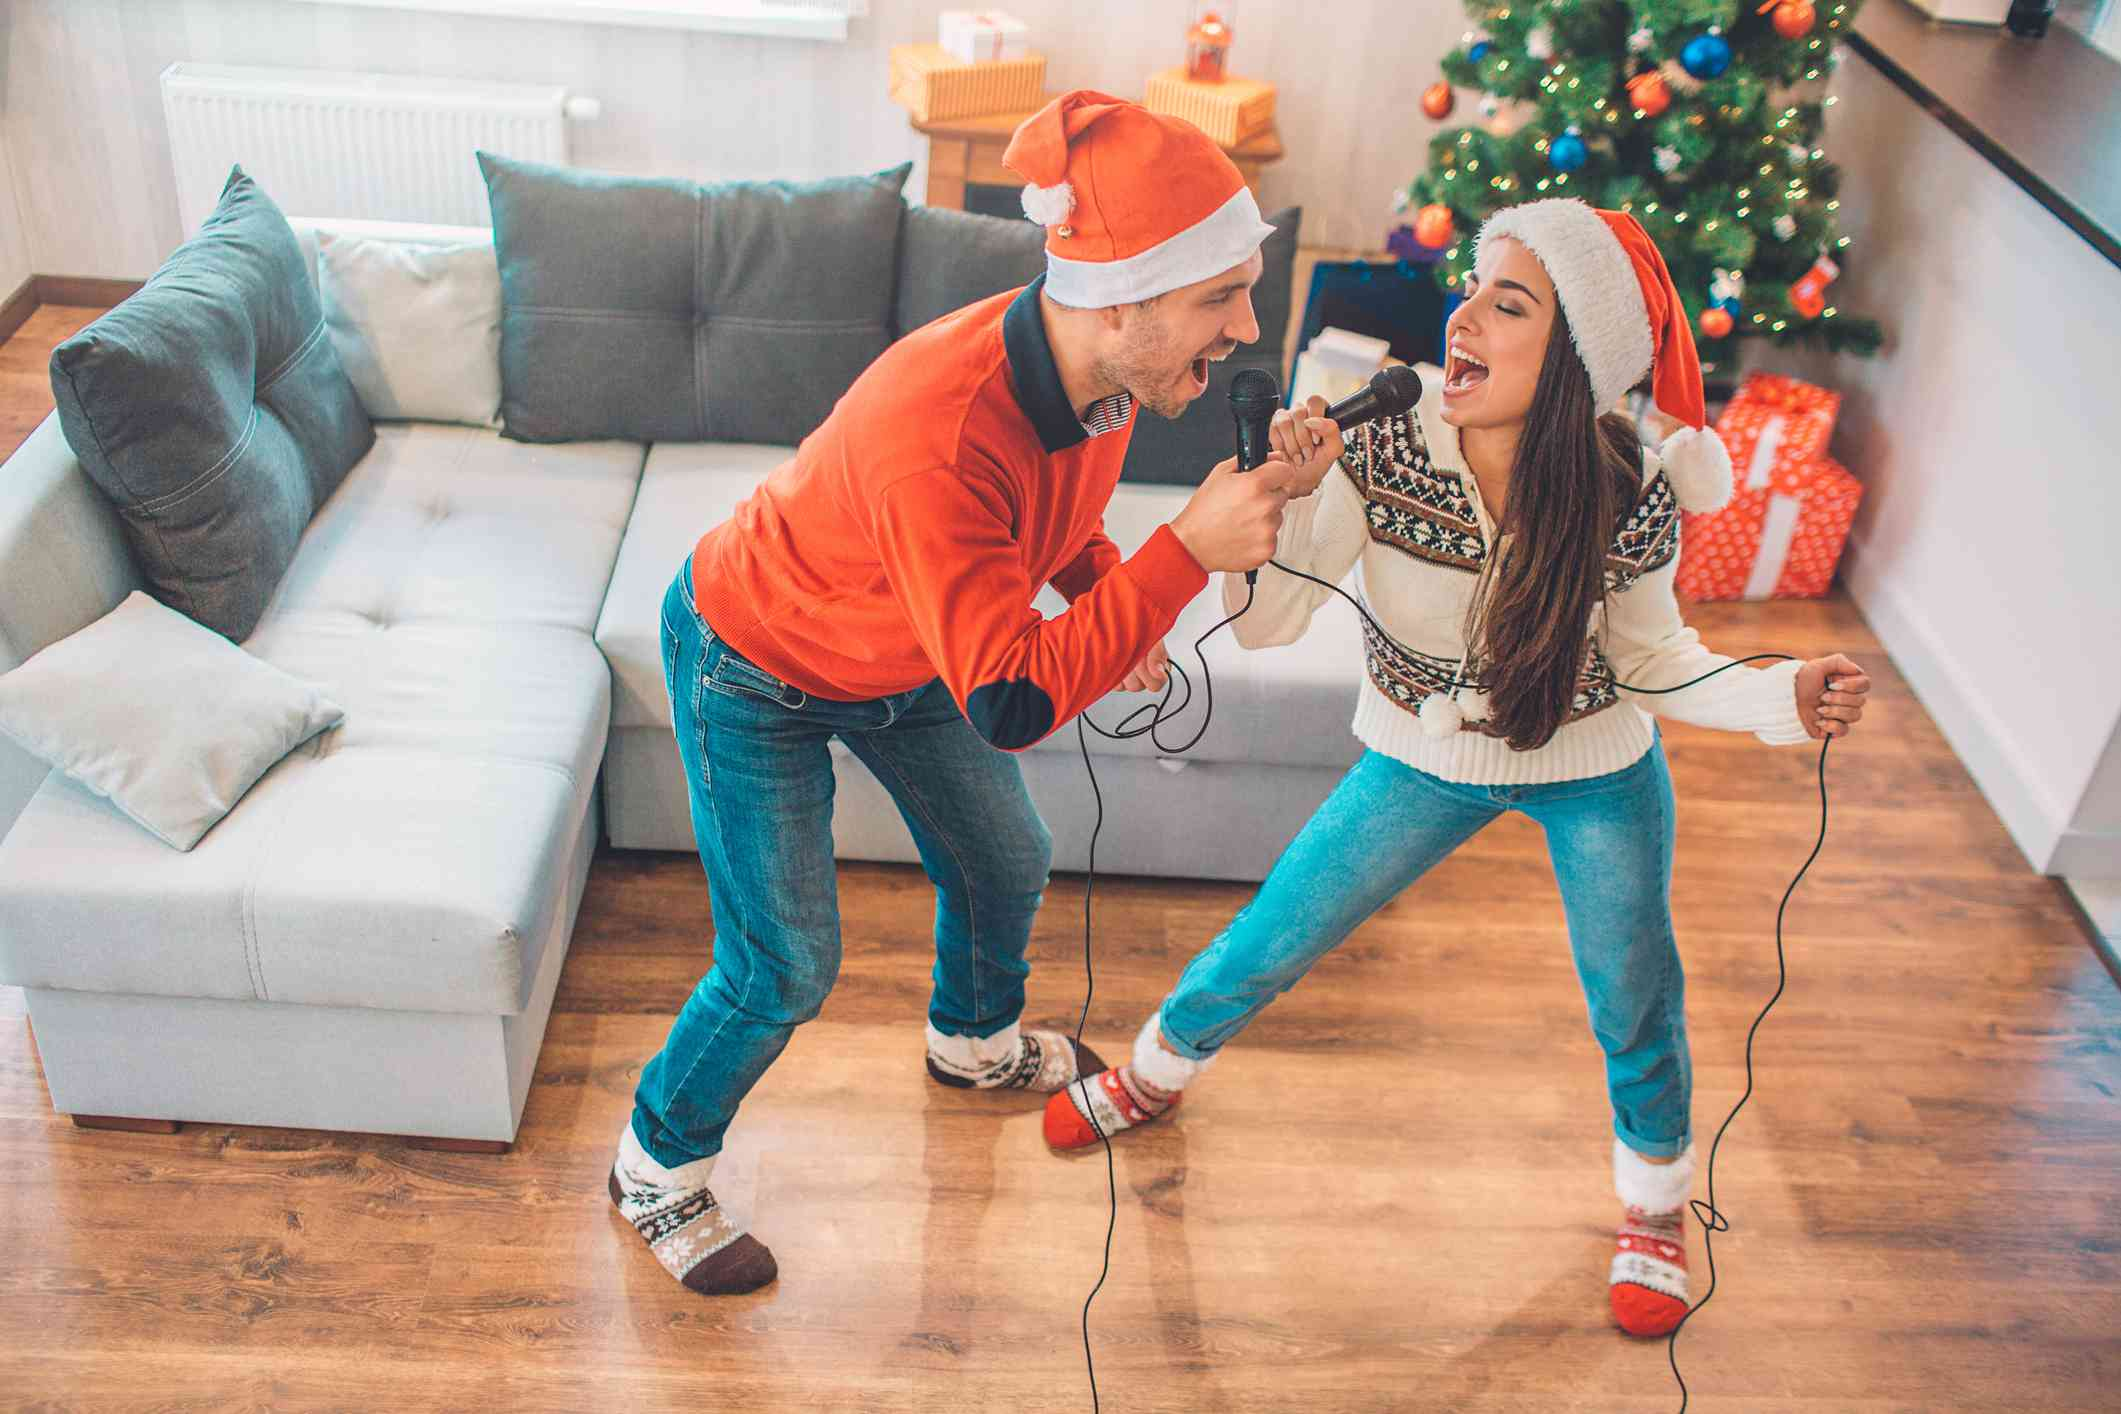 Emotional couple standing and singing together using microphone. They look at each other. People singing out loud. They wear Christmas clothes.